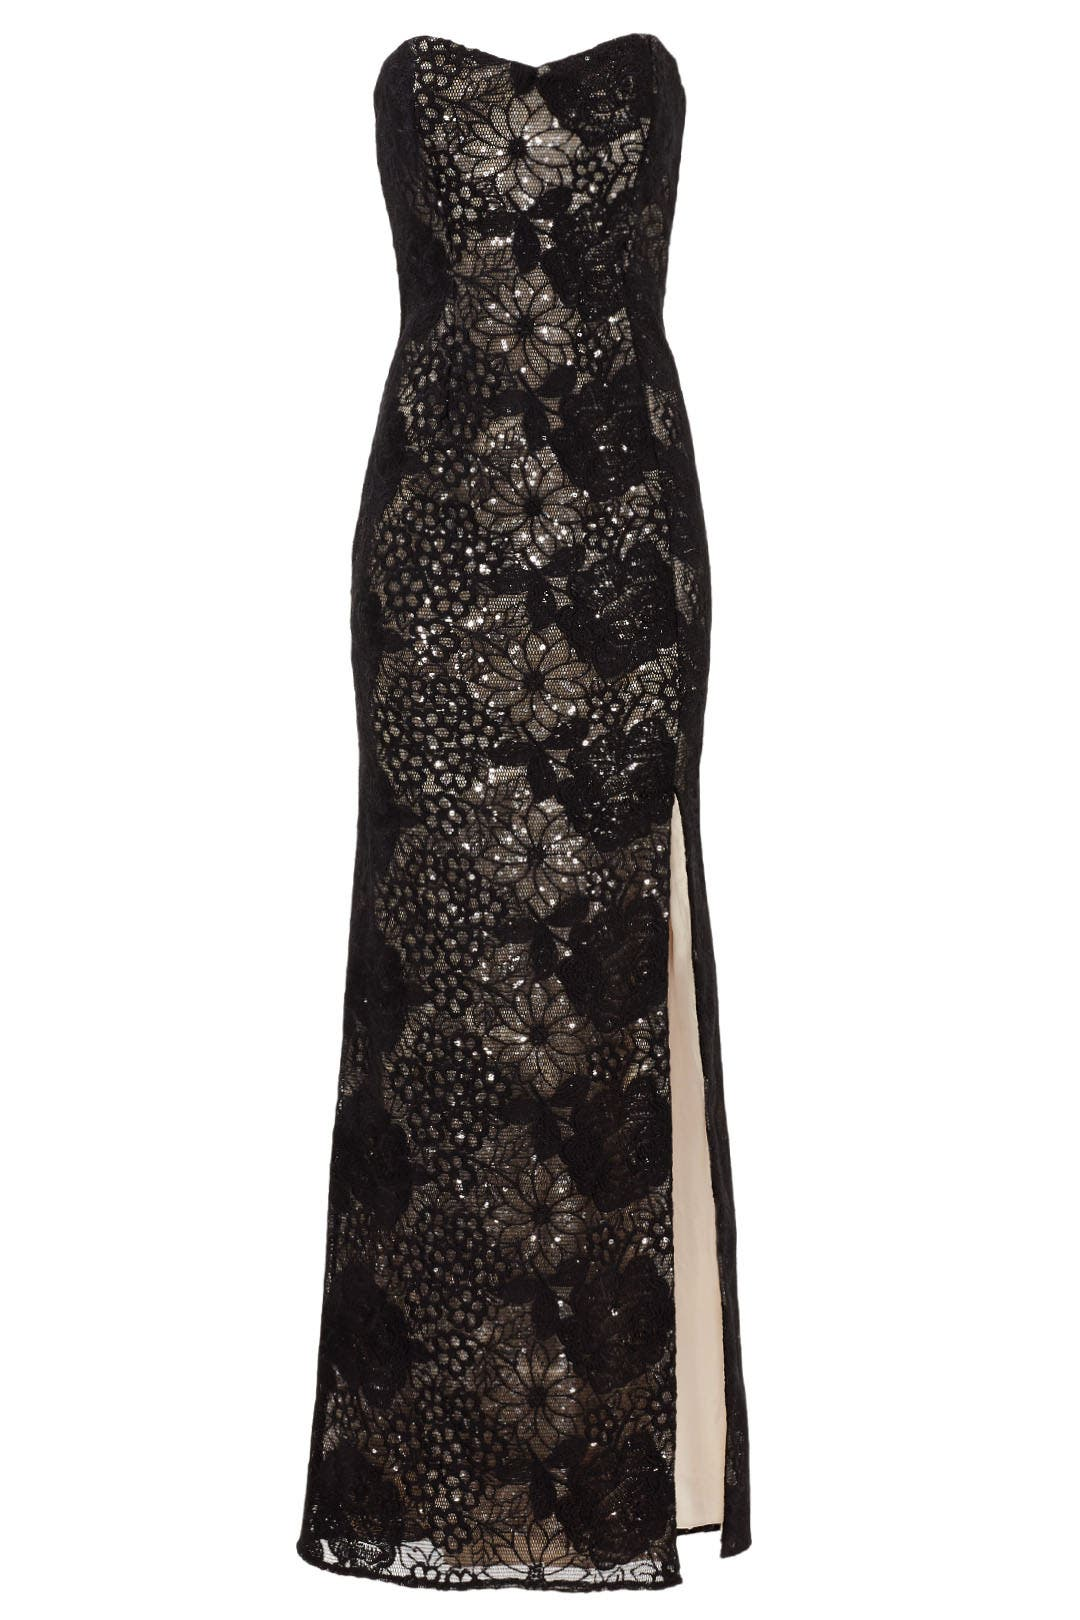 Curves For Days Gown by Badgley Mischka for $115 - $125   Rent the ...